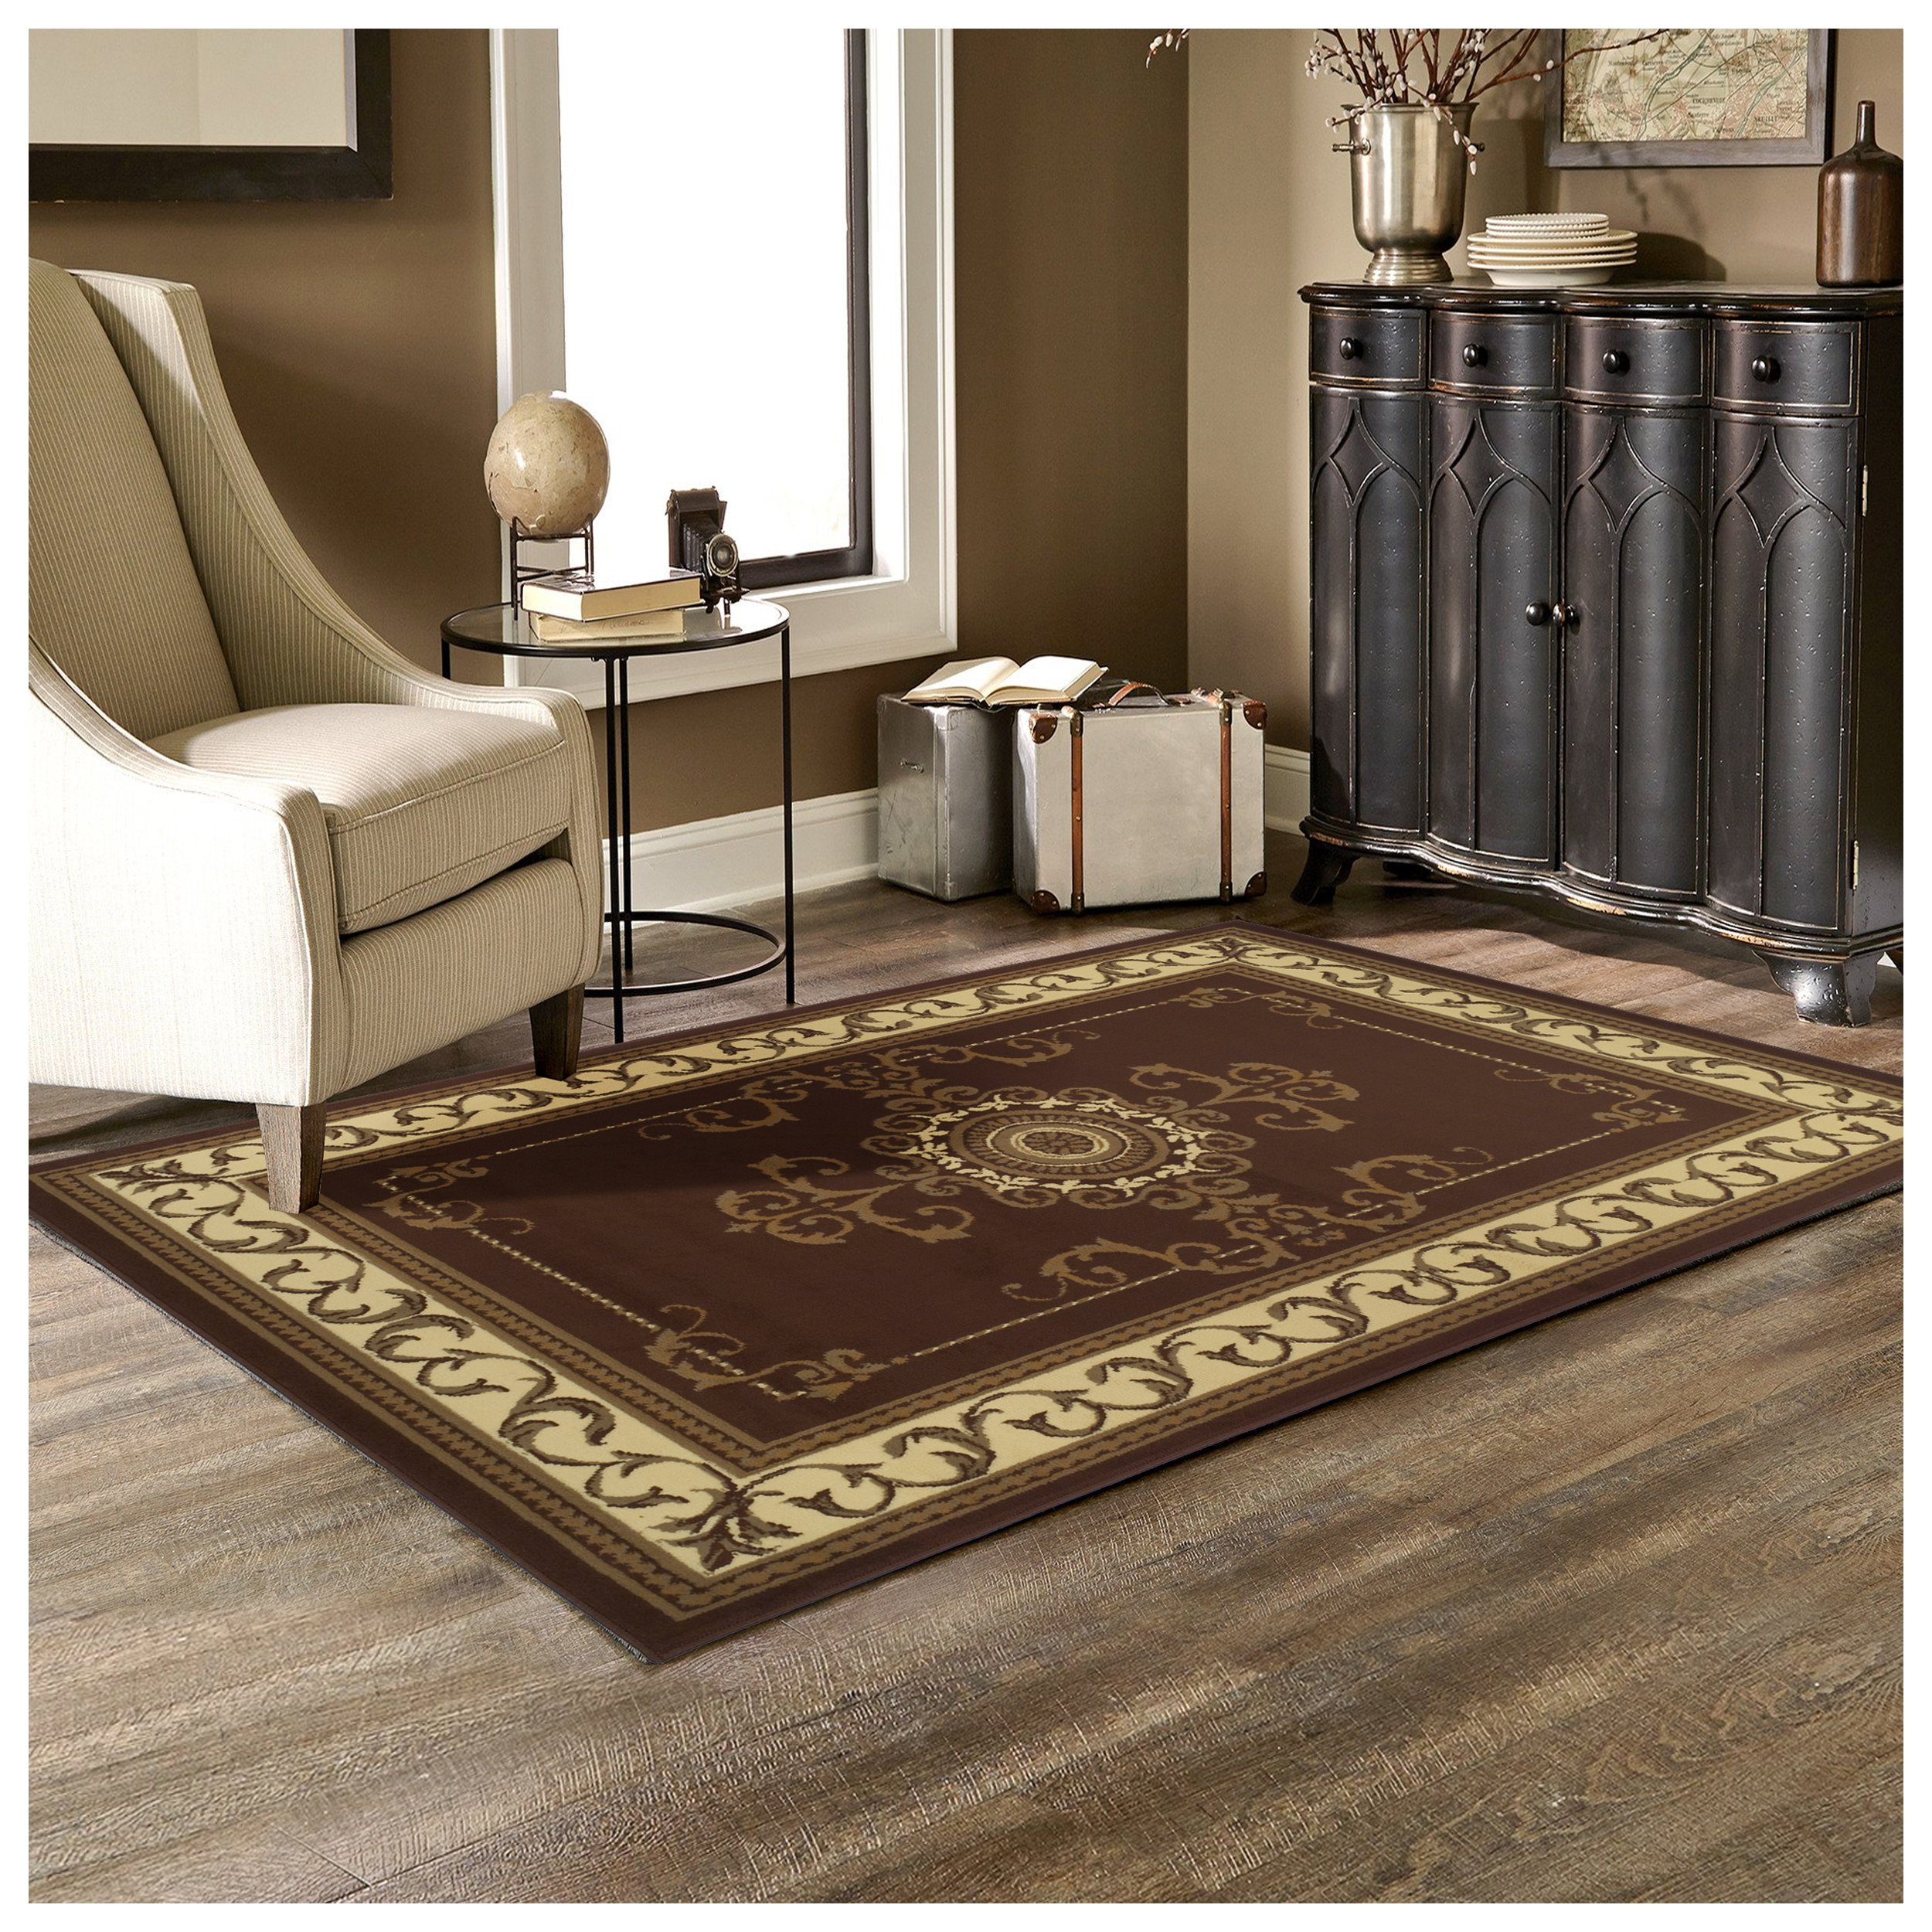 Superior Kensington Collection 5' x 8' Area Rug, Attractive Rug with Jute Backing, Durable and Beautiful Woven Structure, Regal Medallion Rug with Classic Border